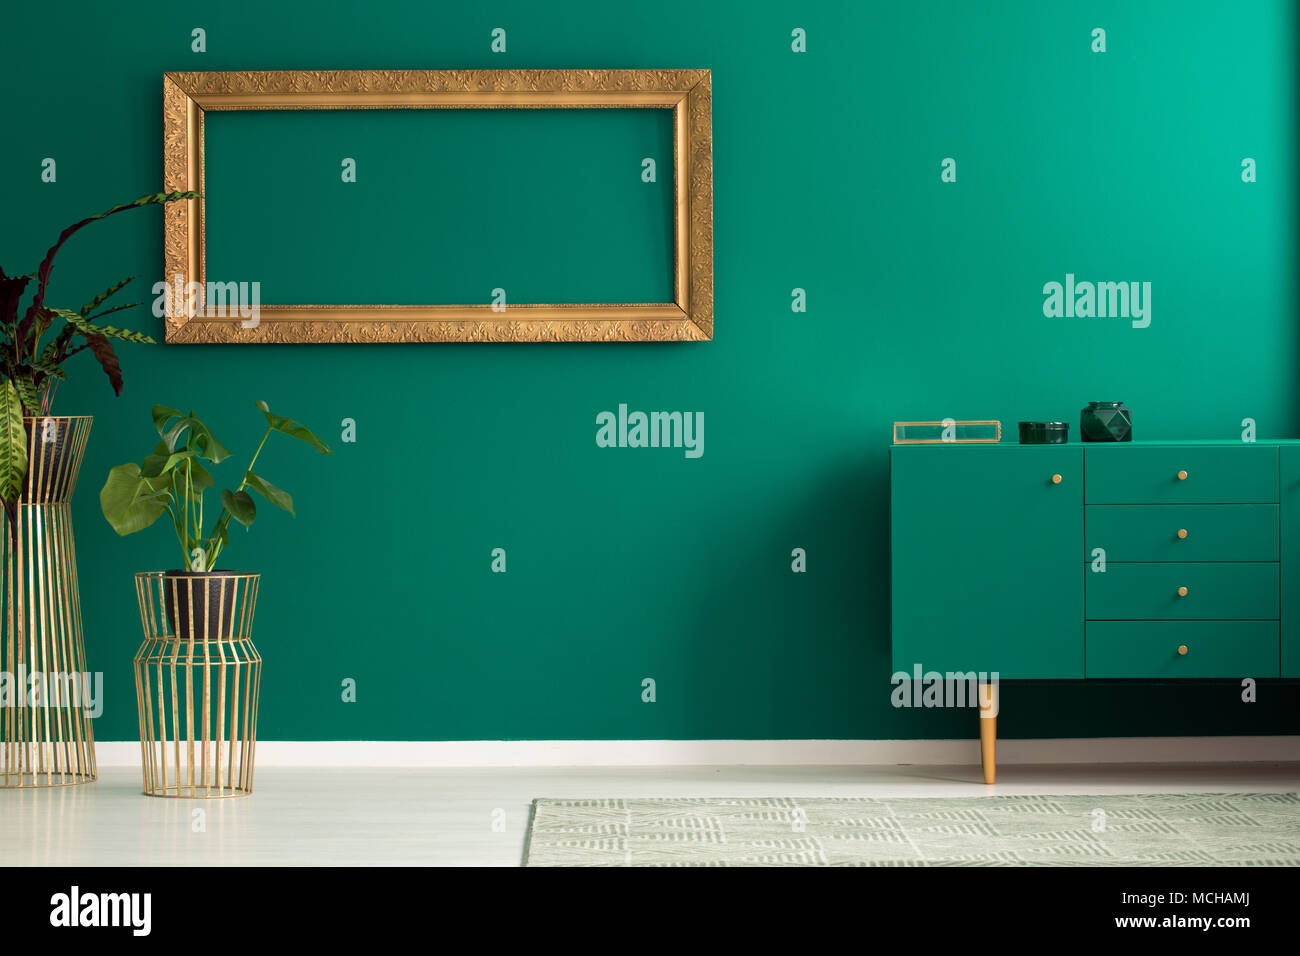 Plant Against The Wall With Empty Gold Frame In Simple Living Room Interior Green Cupboard